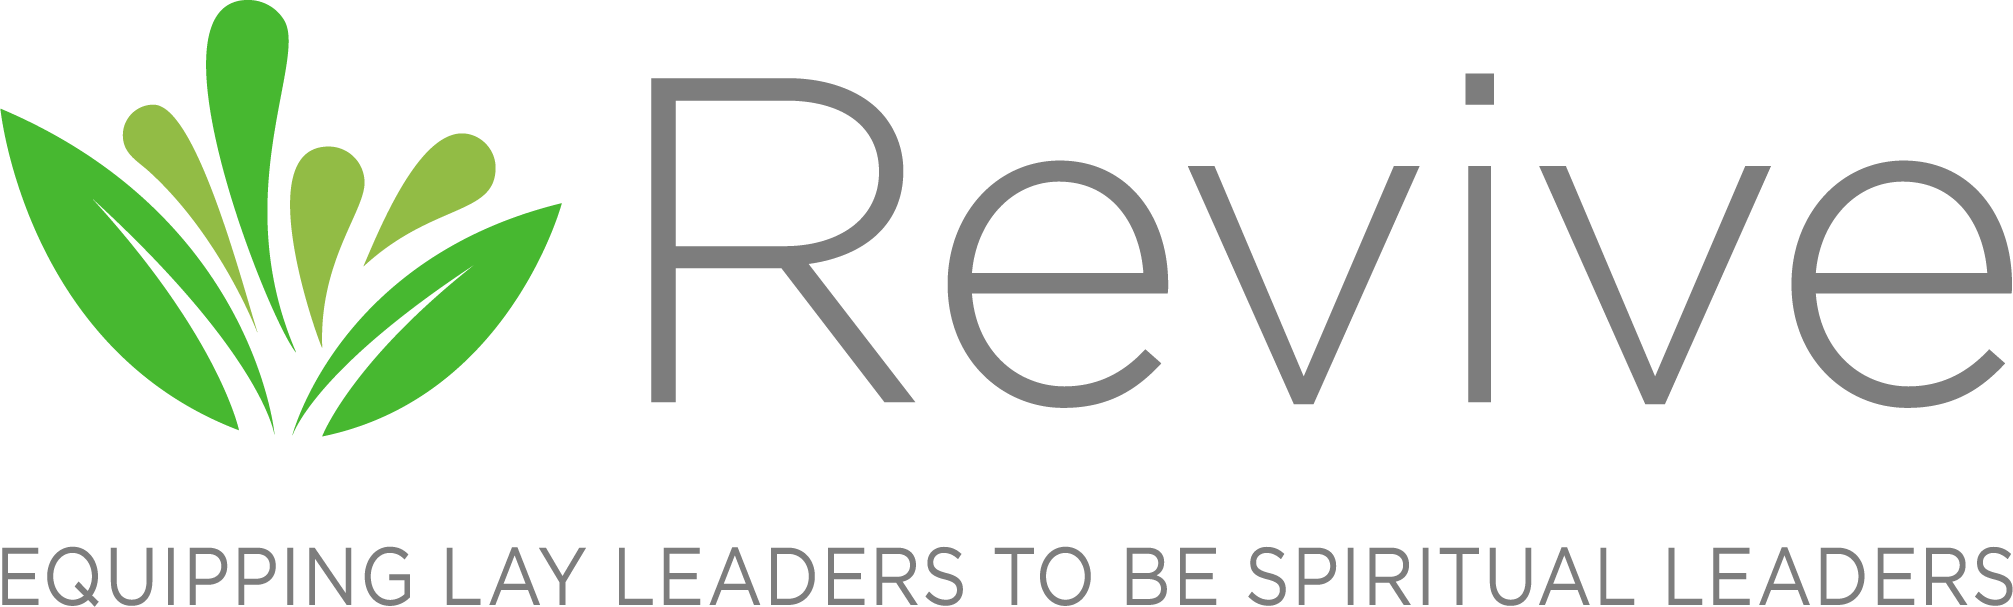 Forward Movement releases Revive, a small-group discipleship program